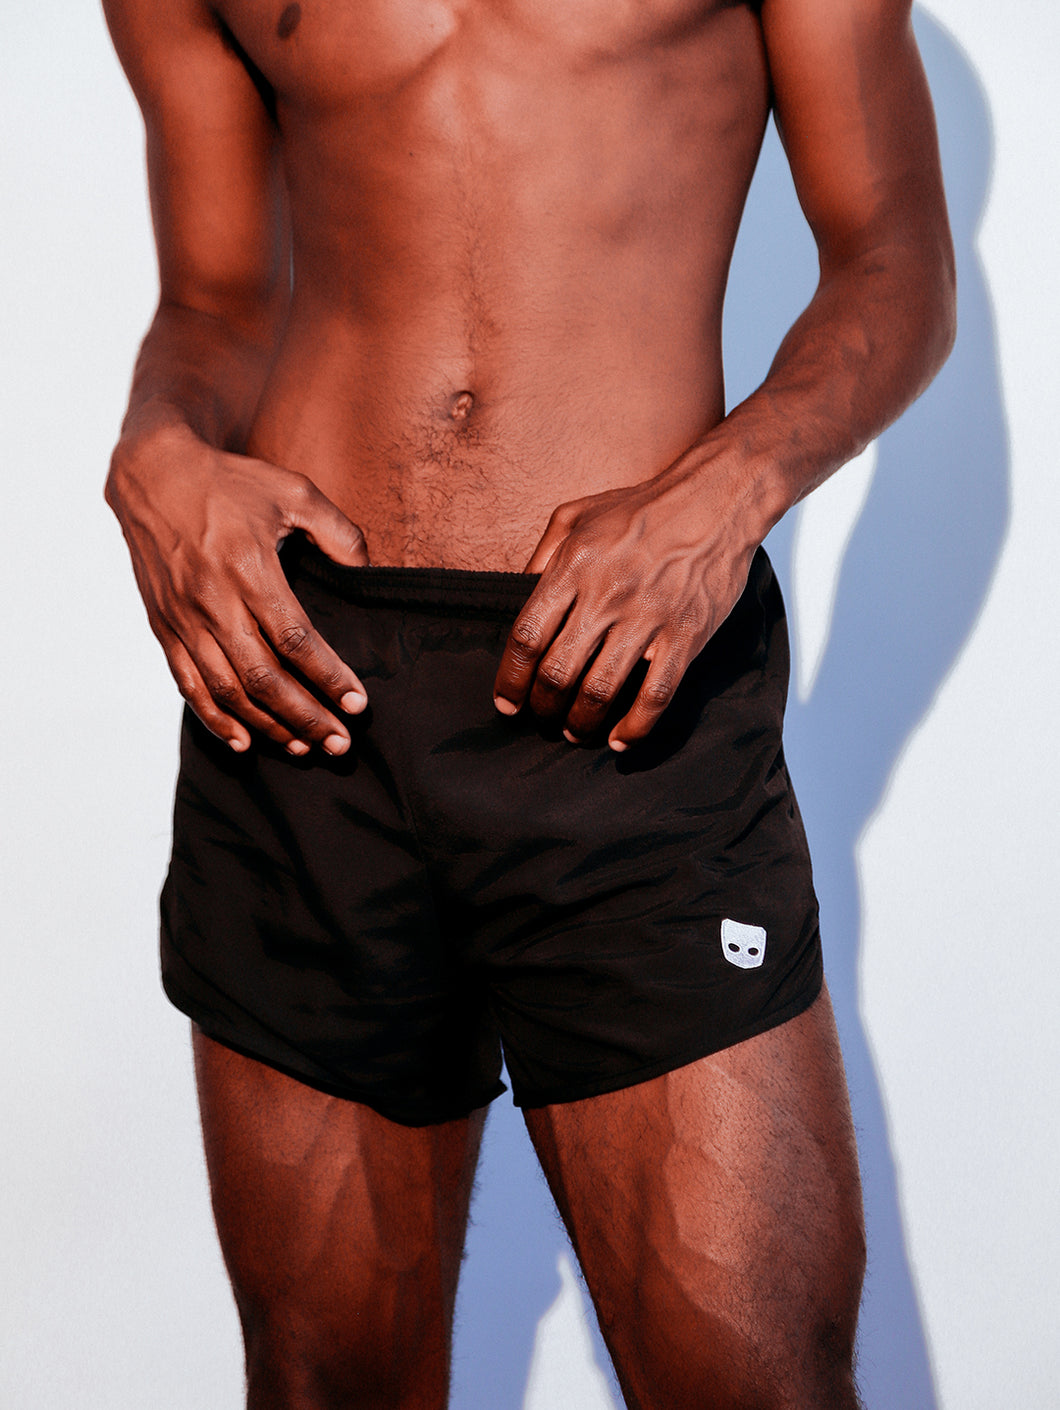 GRINDR EMBROIDERED LOGO SHORTS